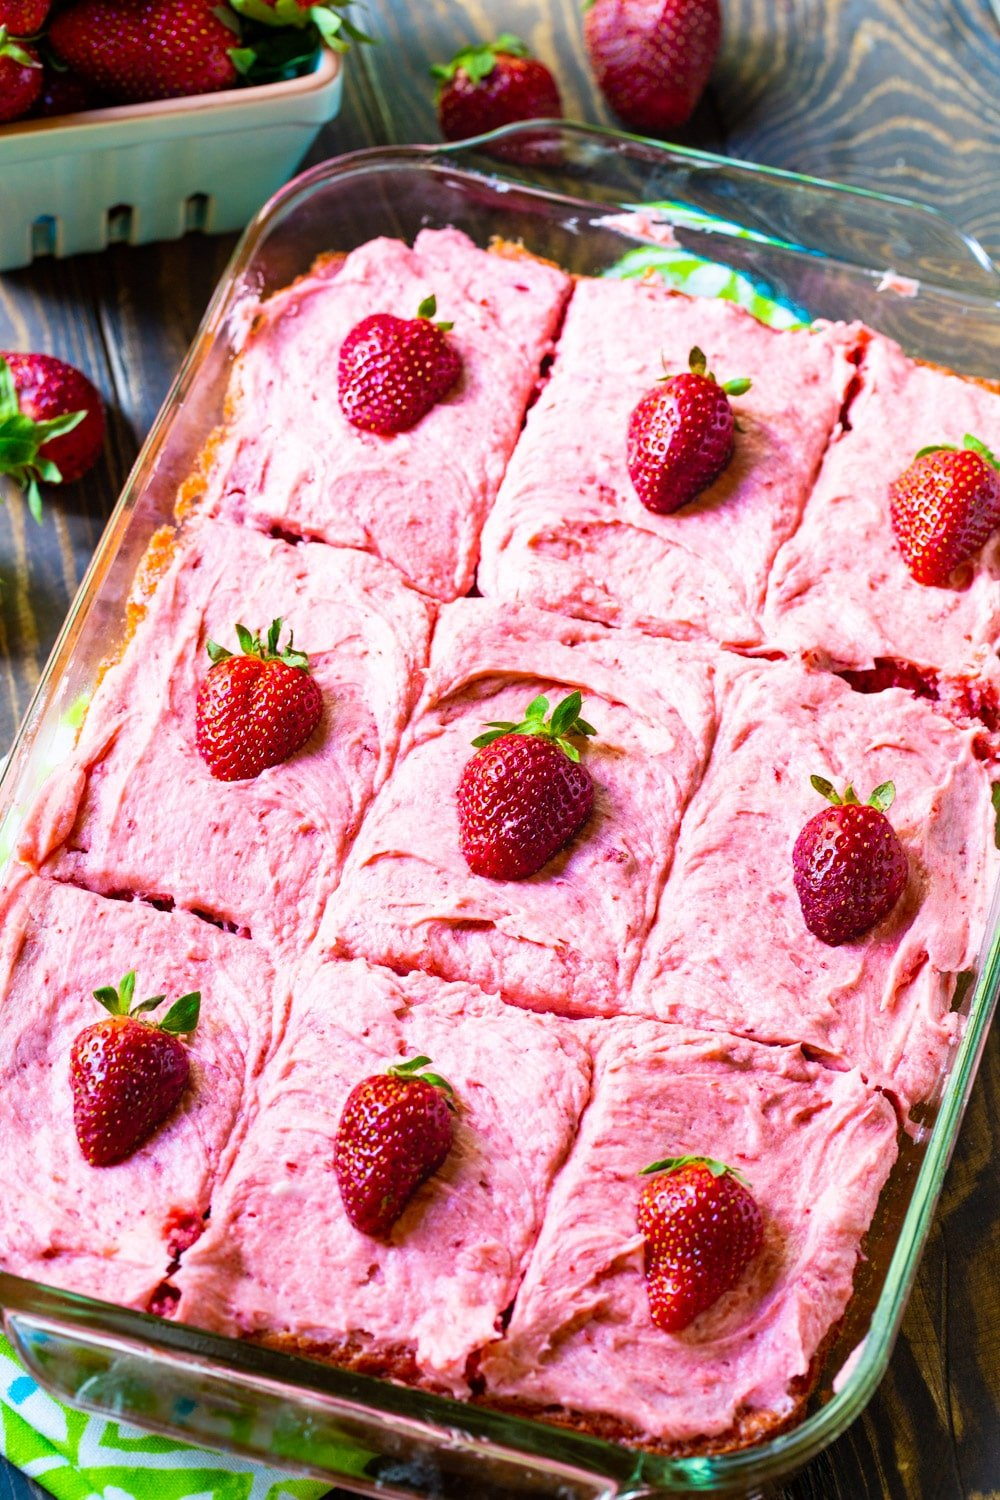 Strawberry flavored sheet cake cut into squares in a baking pan.